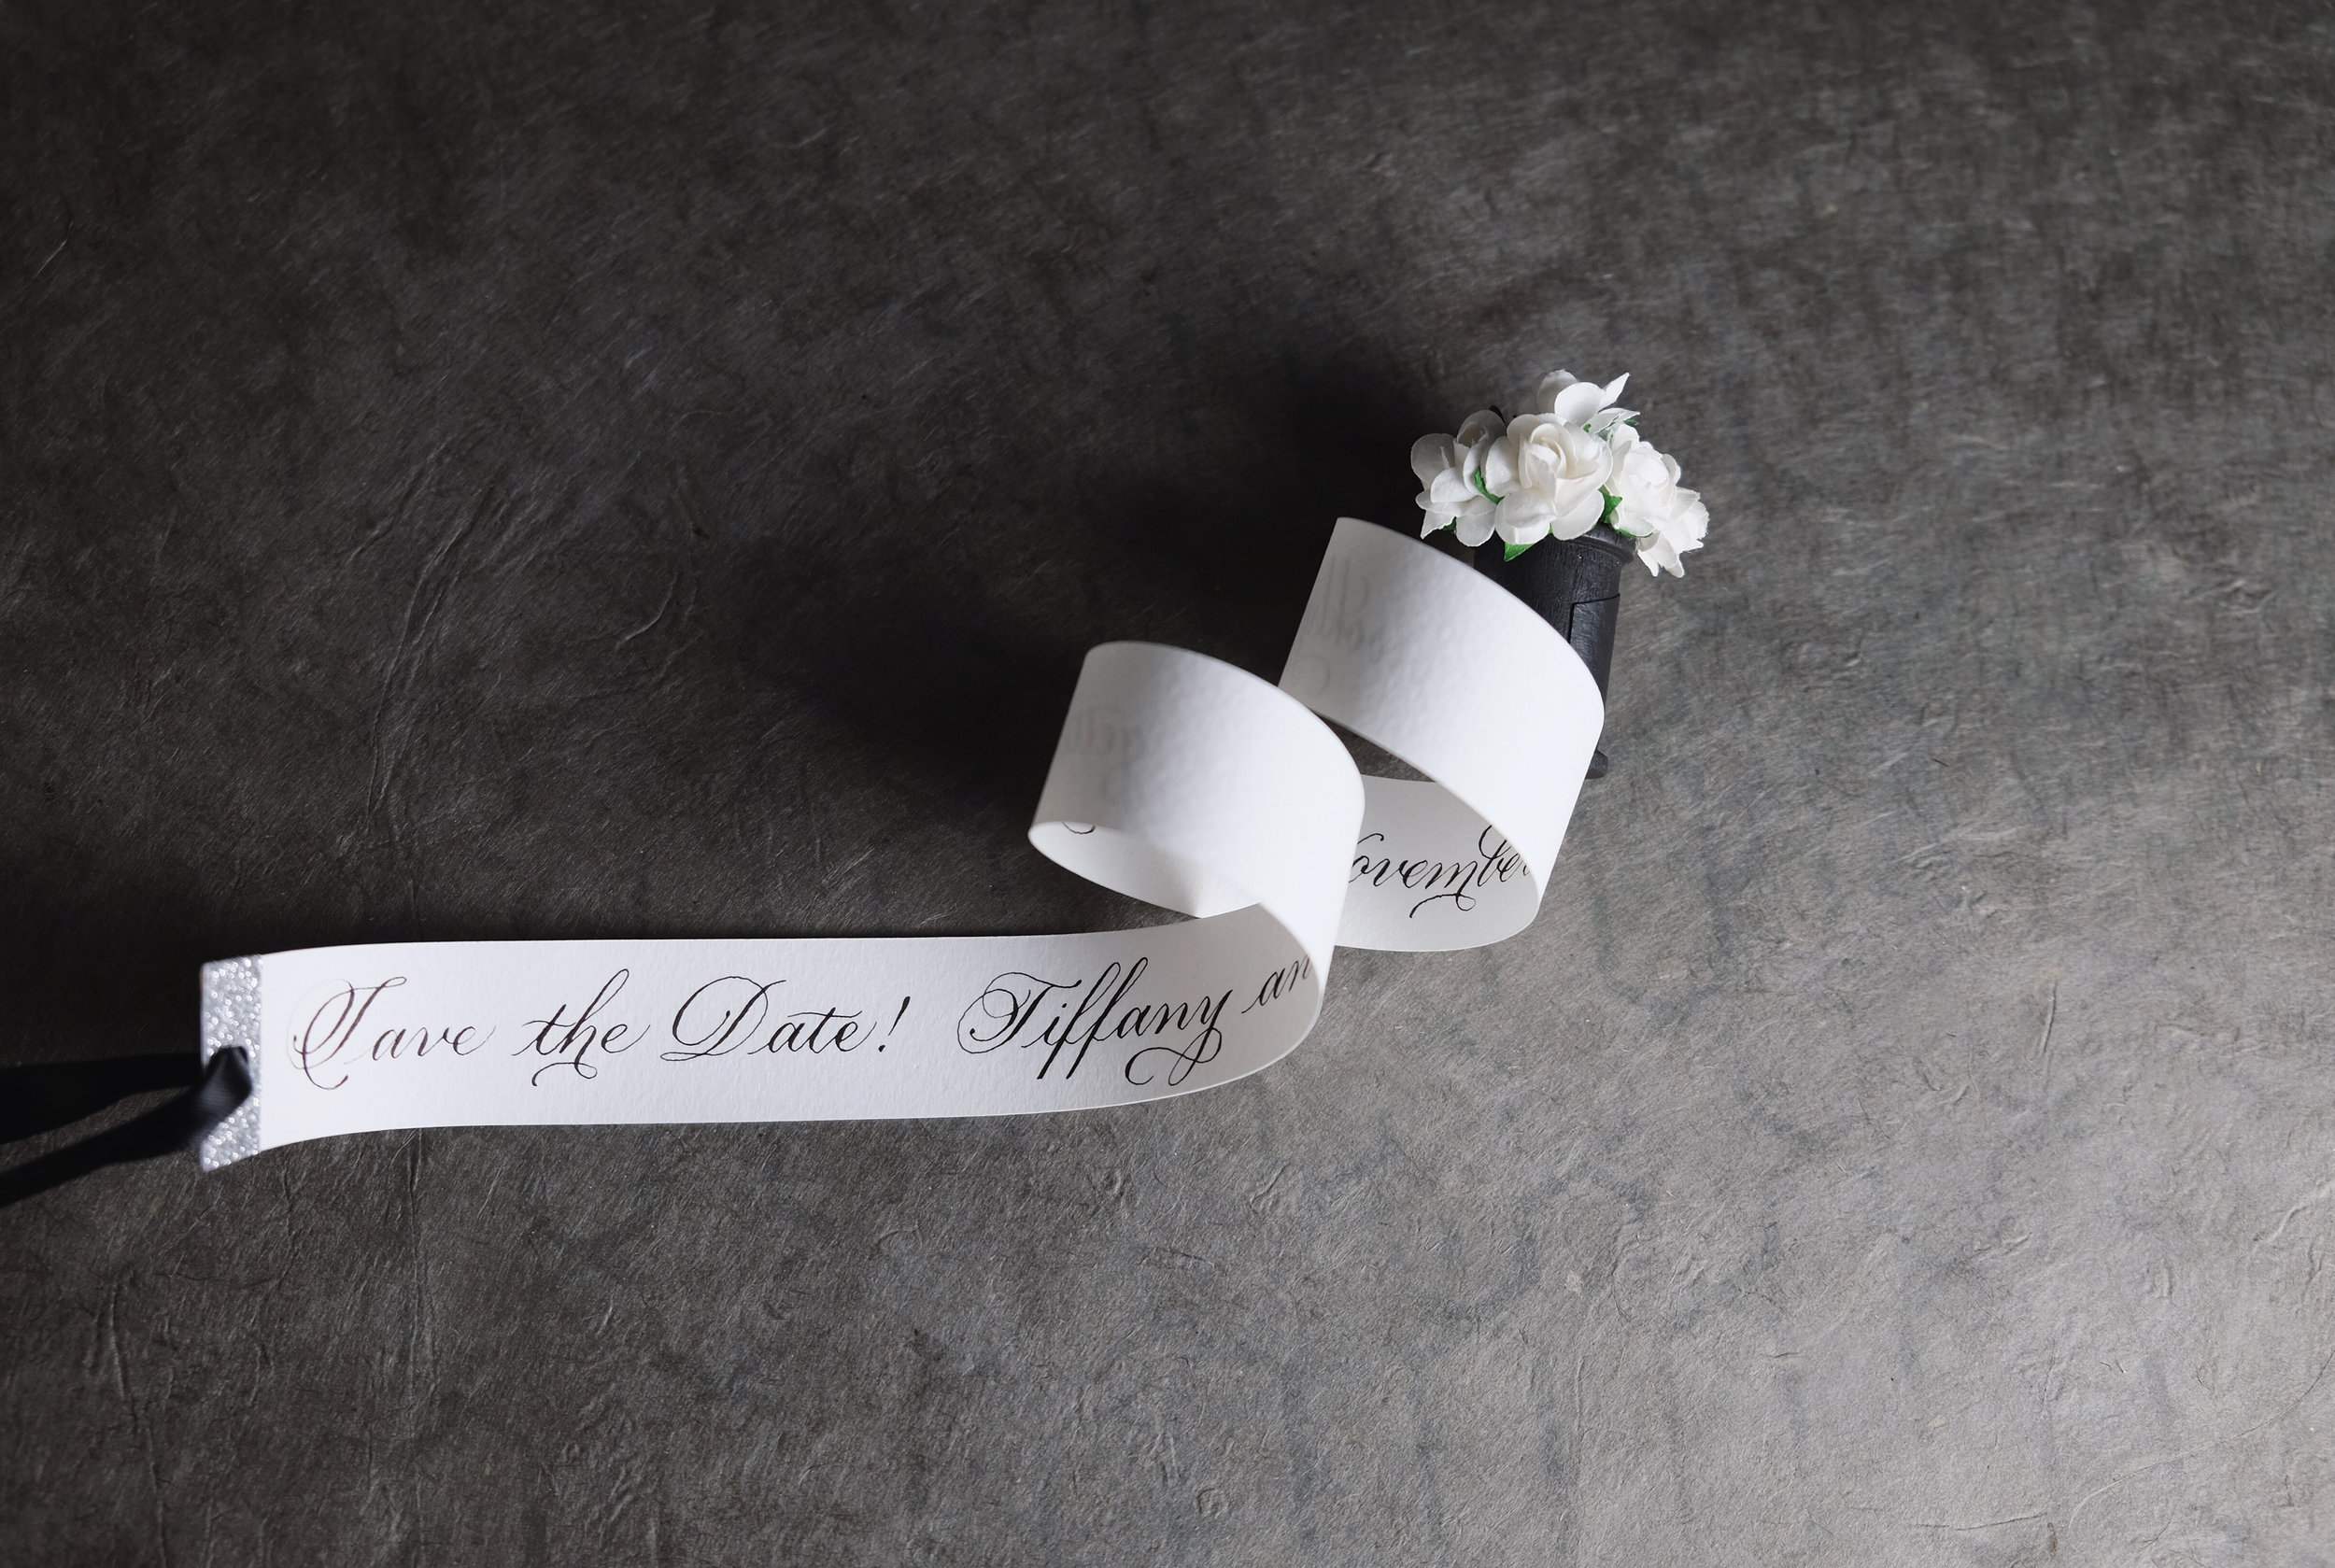 Hand-made Save the Date scrolls for a black-tie affair by Chavelli | www.chavelli.com